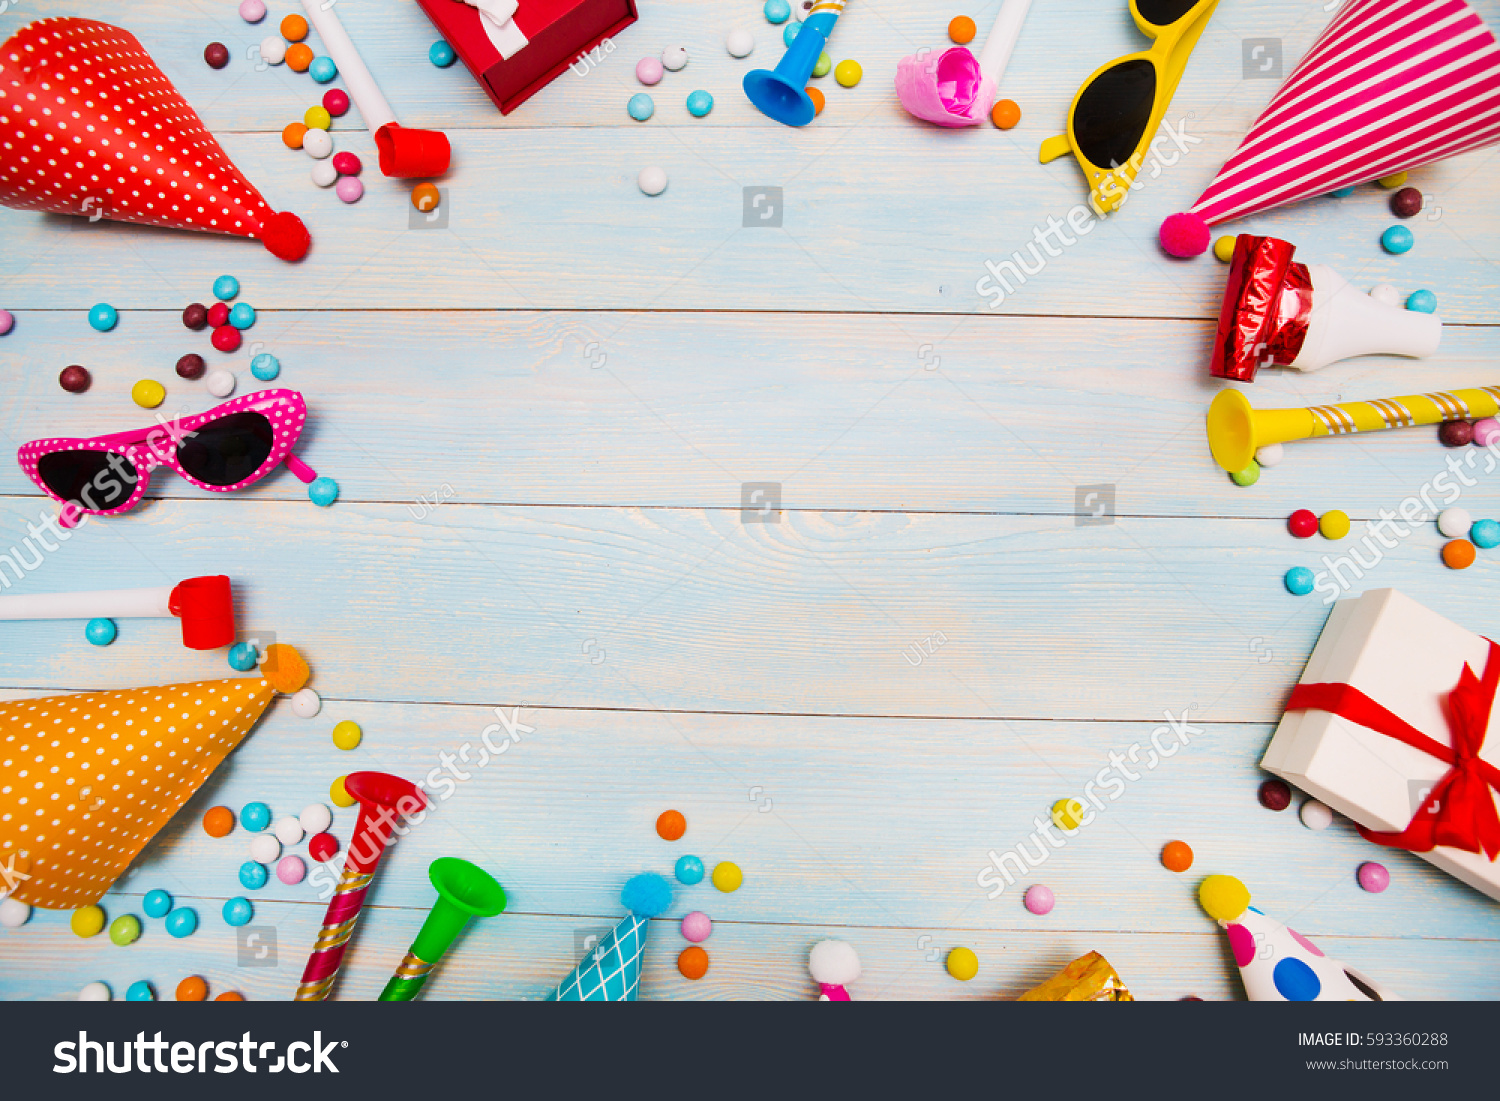 Children Party Background Birthday Background Colorful Stock Photo